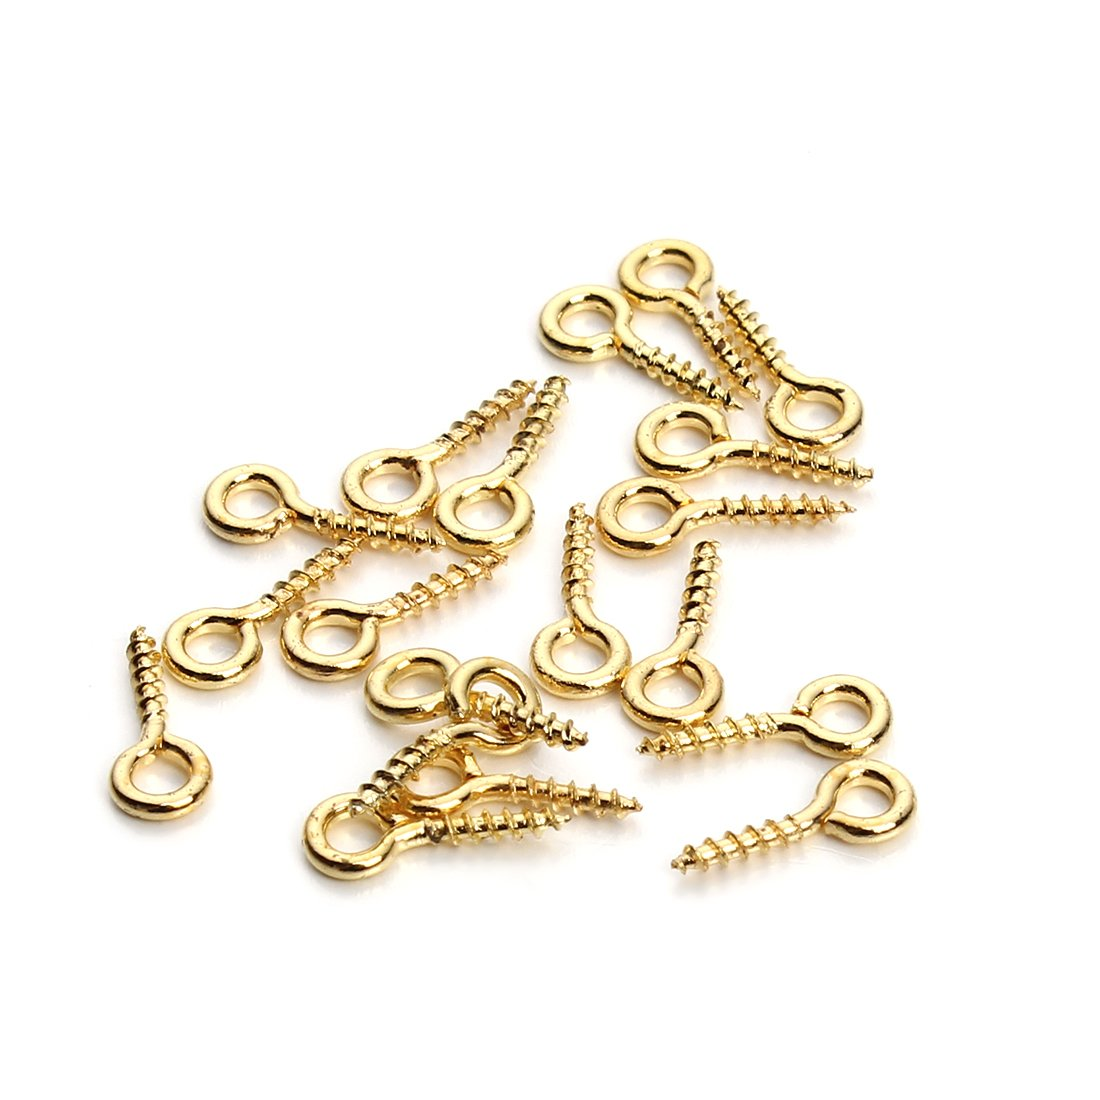 Linsoir Beads 200pcs Sturdy Metal Tiny Screw Eyes Pin Bail Peg Antique Bronze Tone 5X12mm F256AB5X12